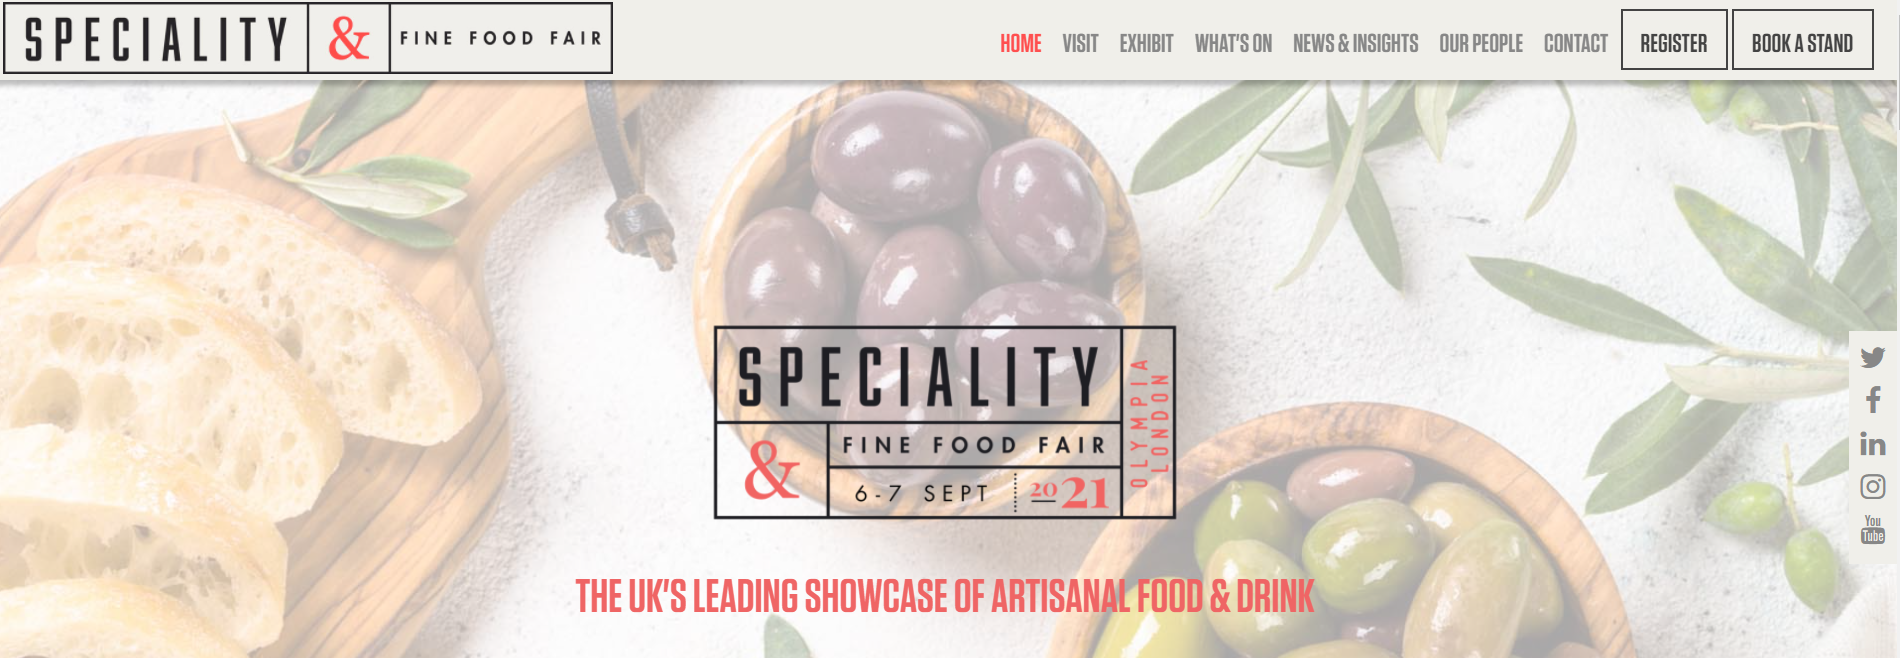 We're exhibiting at the Speciality & Fine Food Fair